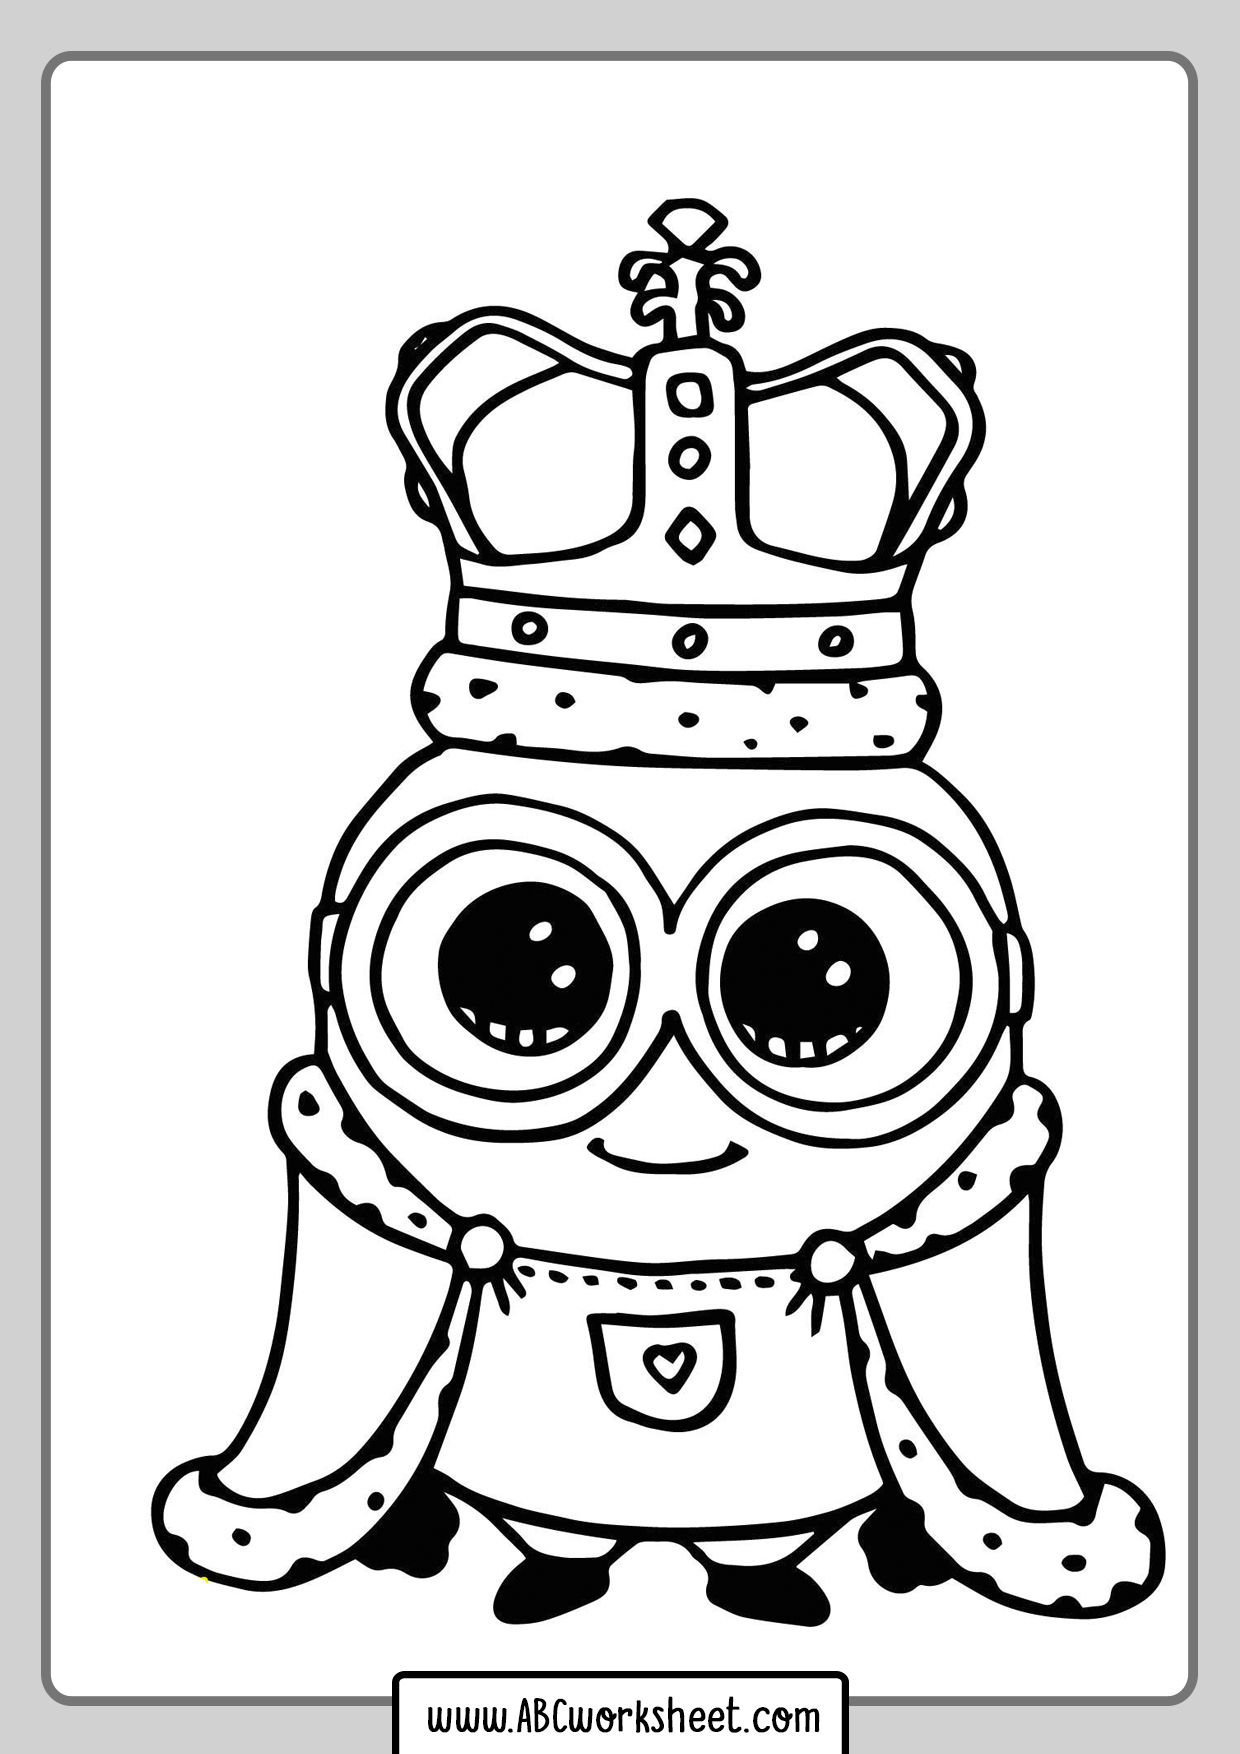 The Minions Coloring Pages For Kids